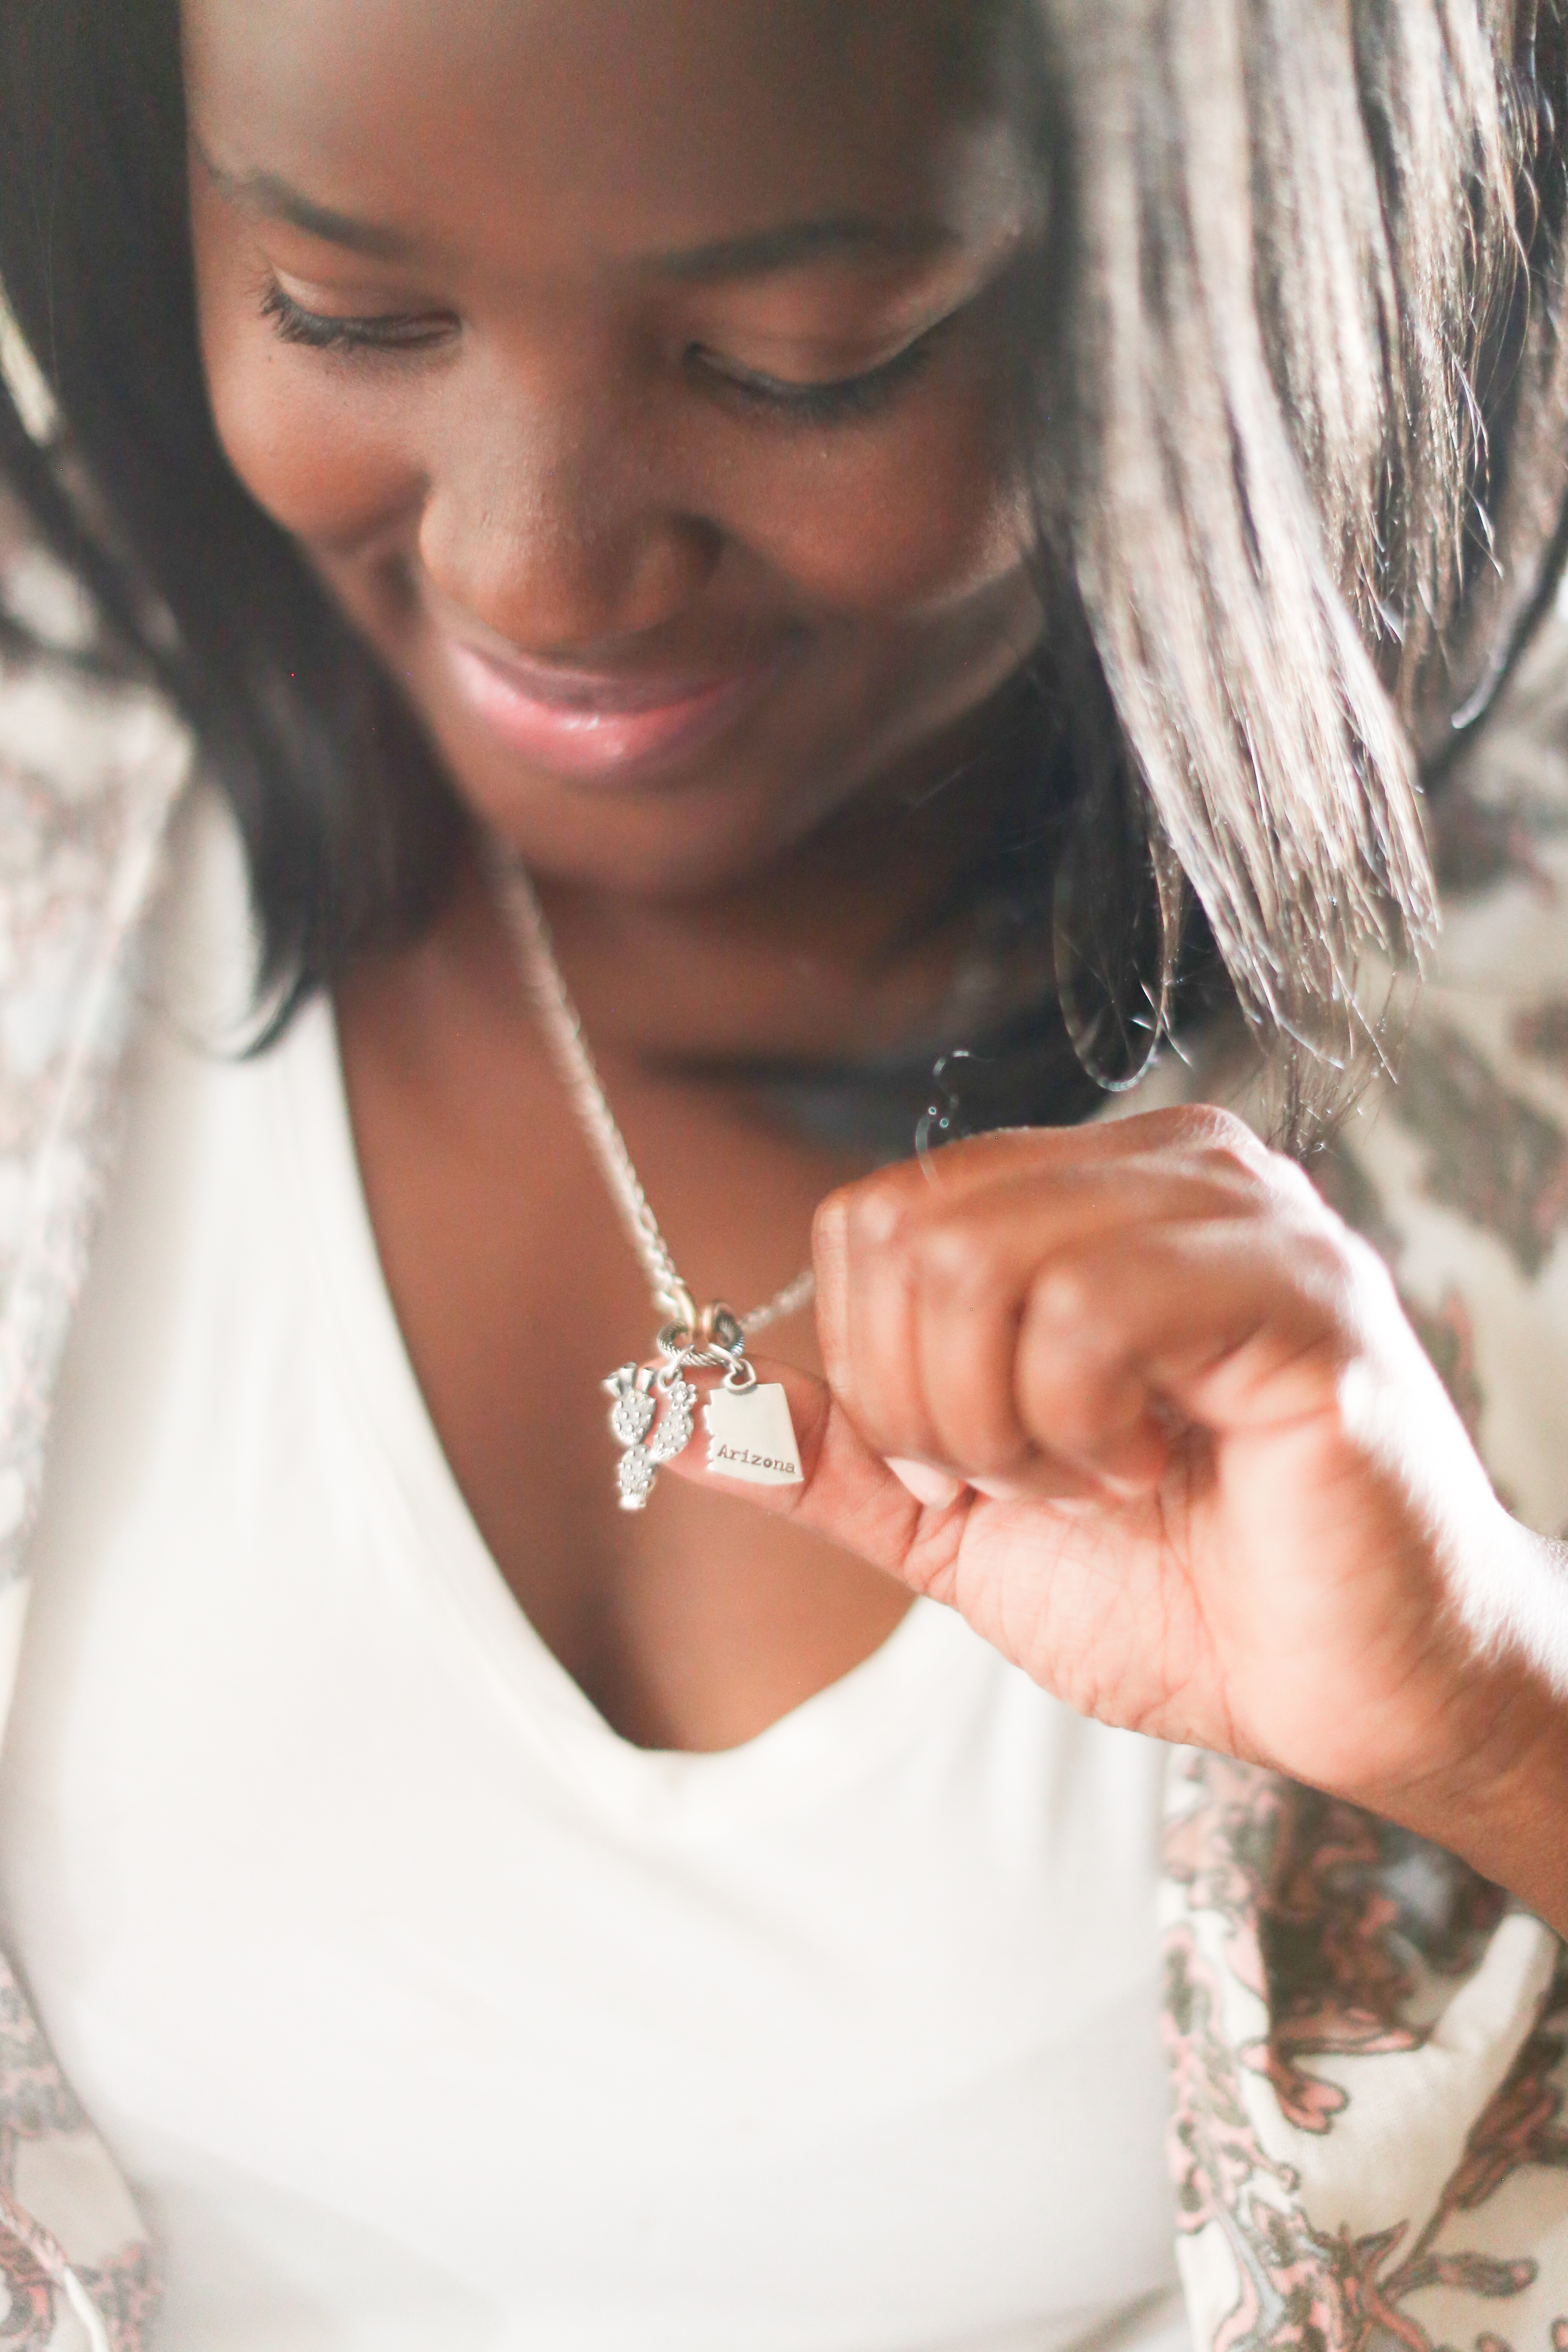 Graduation Gifts with James Avery | Just Destiny